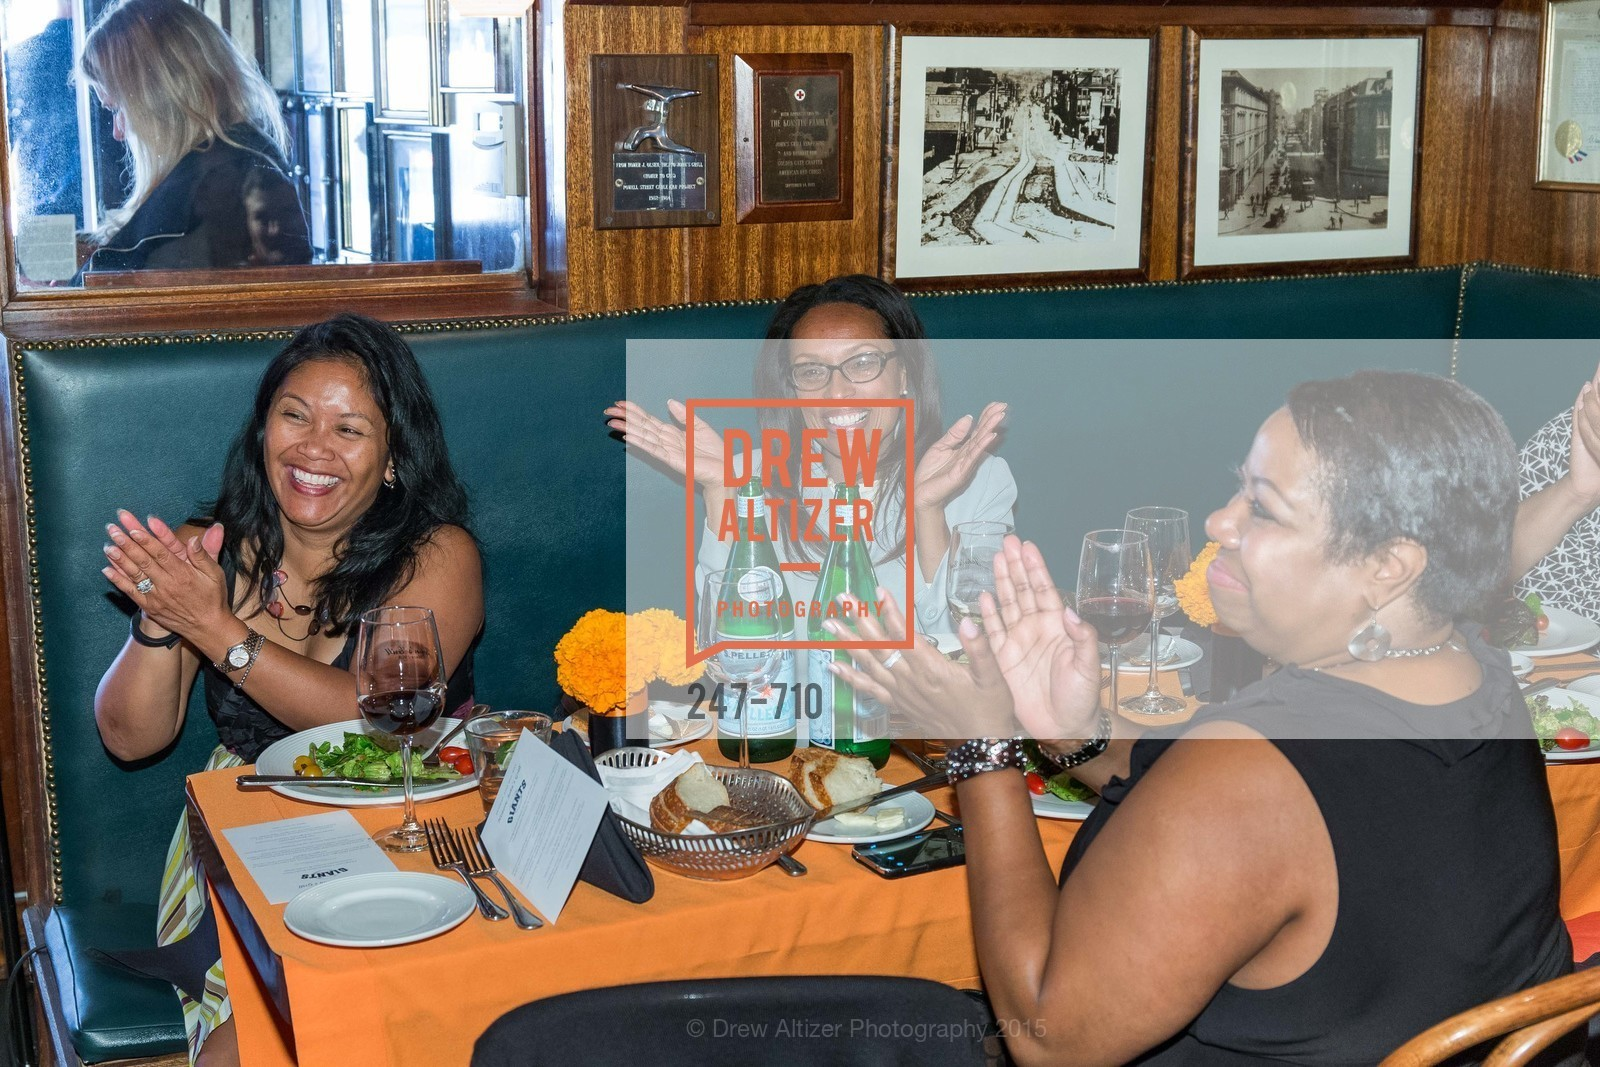 Atmosphere, 3-RING LUNCH CELEBRATION Honoring RENEL BROOKS-MOON, US, June 8th, 2015,Drew Altizer, Drew Altizer Photography, full-service agency, private events, San Francisco photographer, photographer california